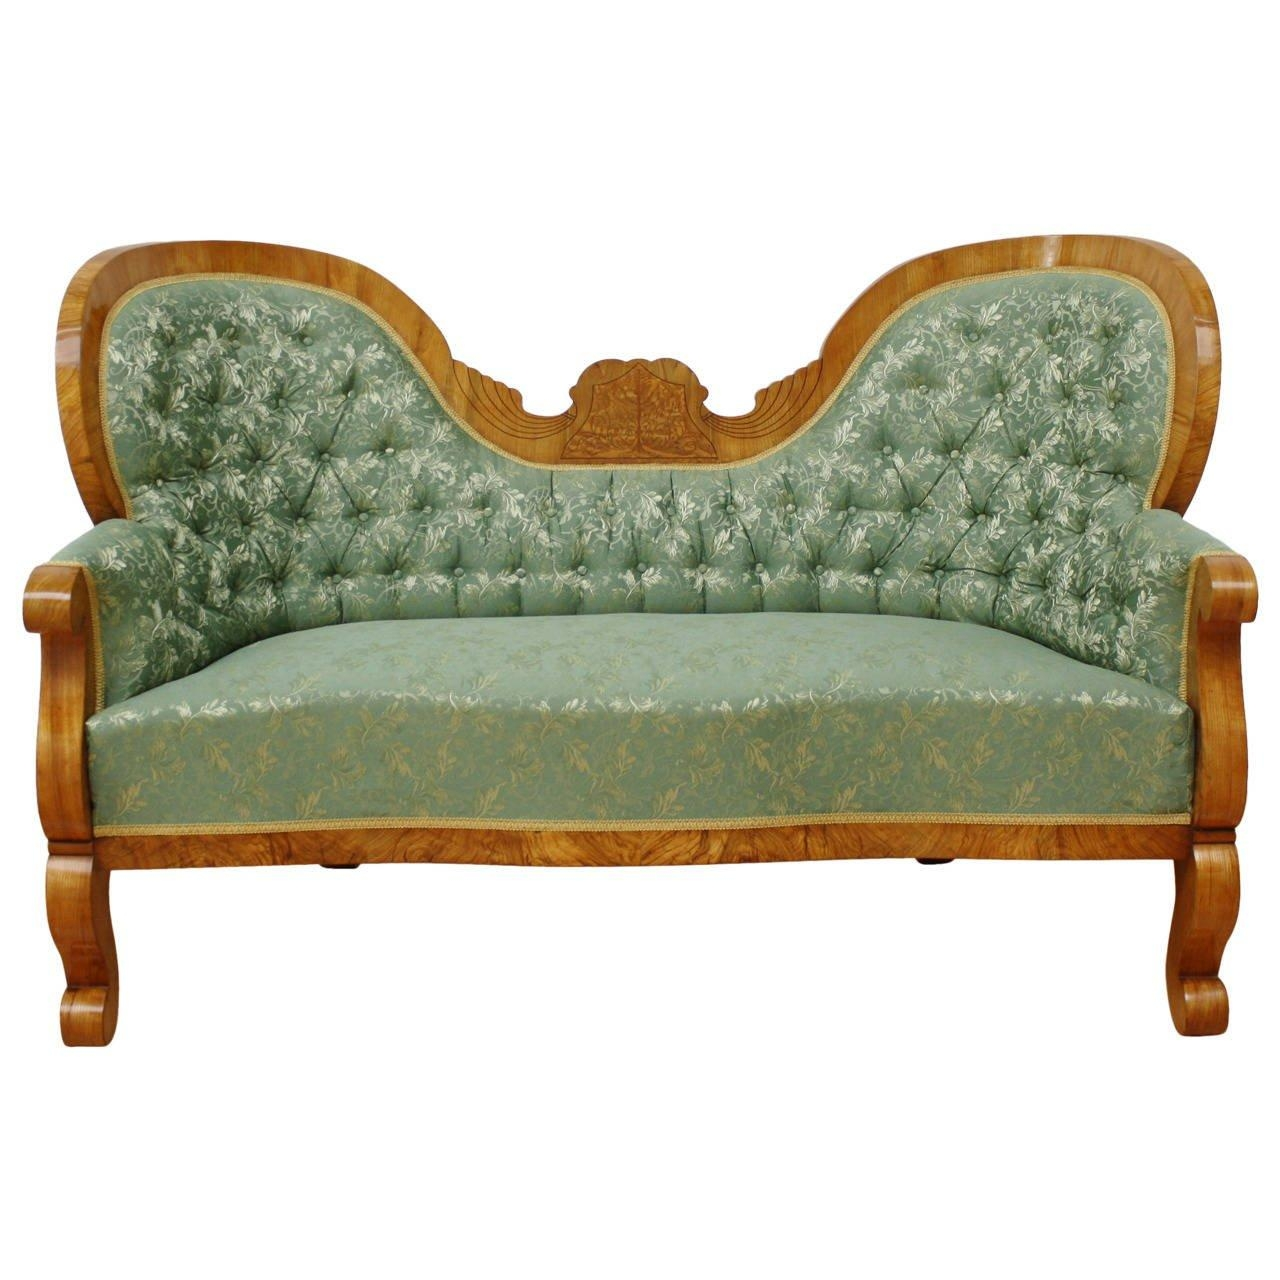 19Th Century Austrian Biedermeier Sofa For Sale At 1Stdibs with regard to Biedermeier Sofas